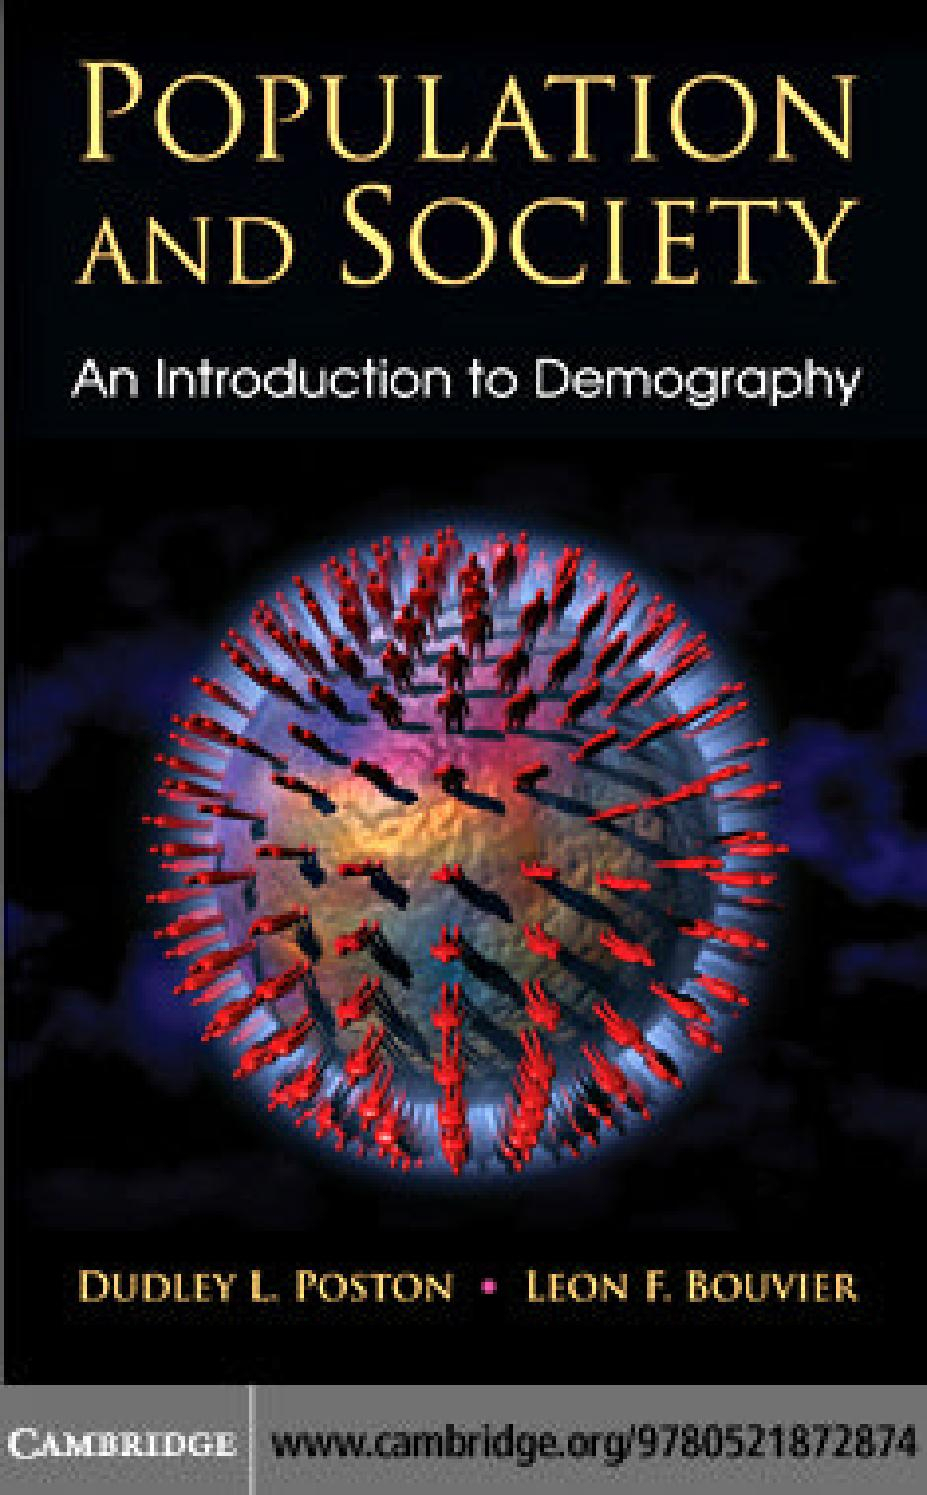 Population And Society - An Introduction To Demography By